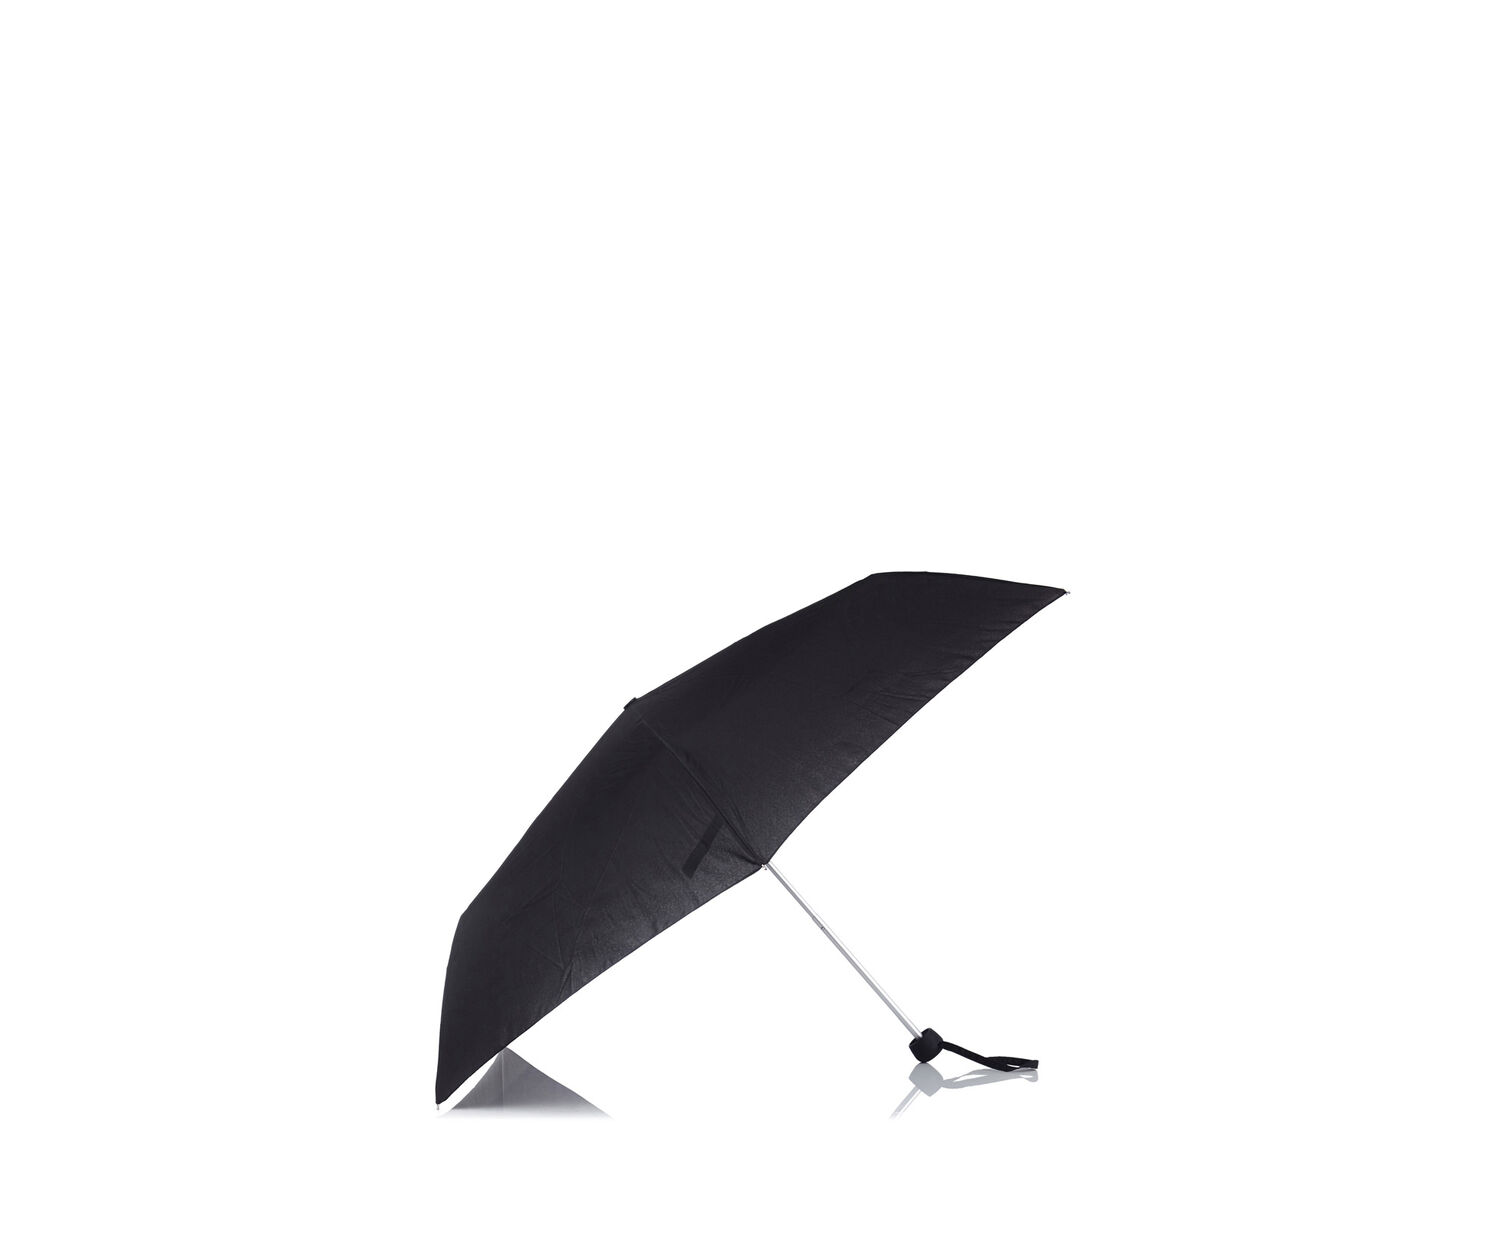 Oasis, PLAIN UMBRELLA Black 1